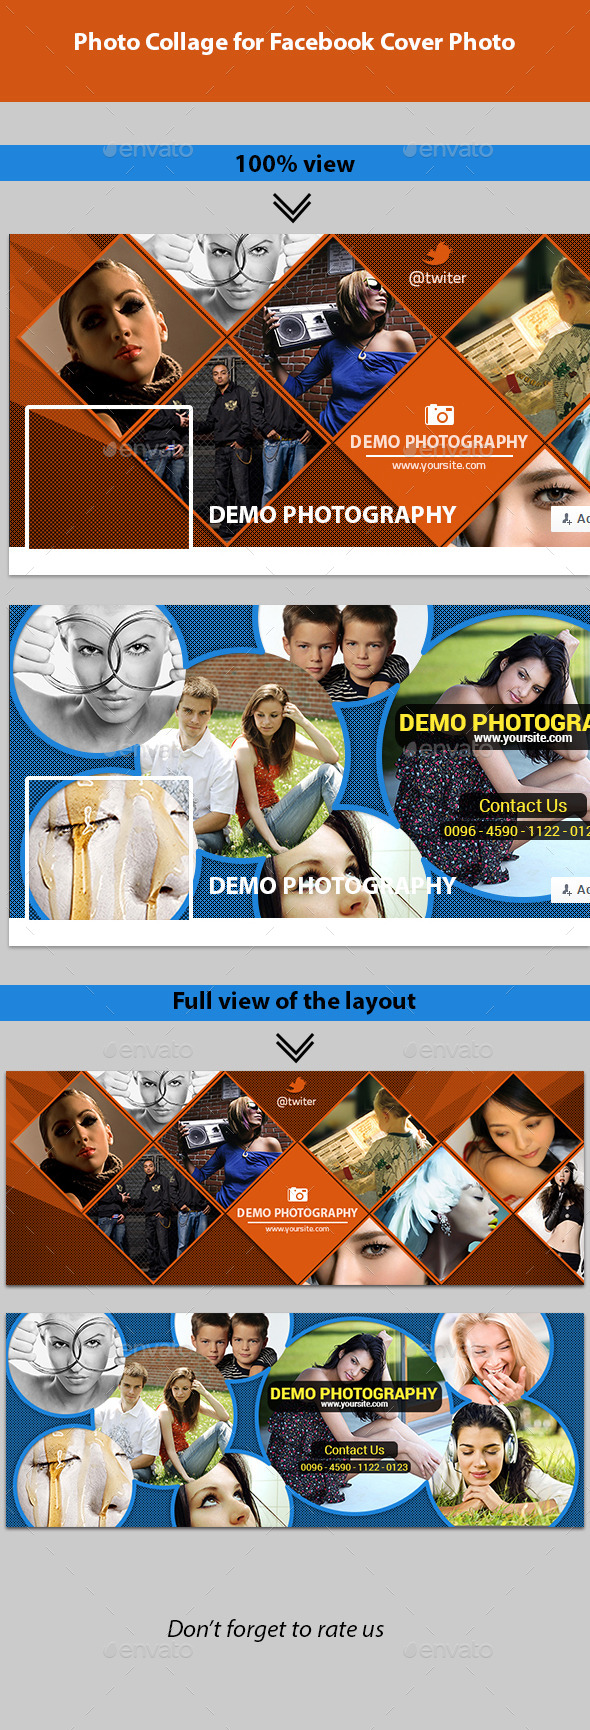 GraphicRiver Photo Collage for Facebook Cover Photo 11874393